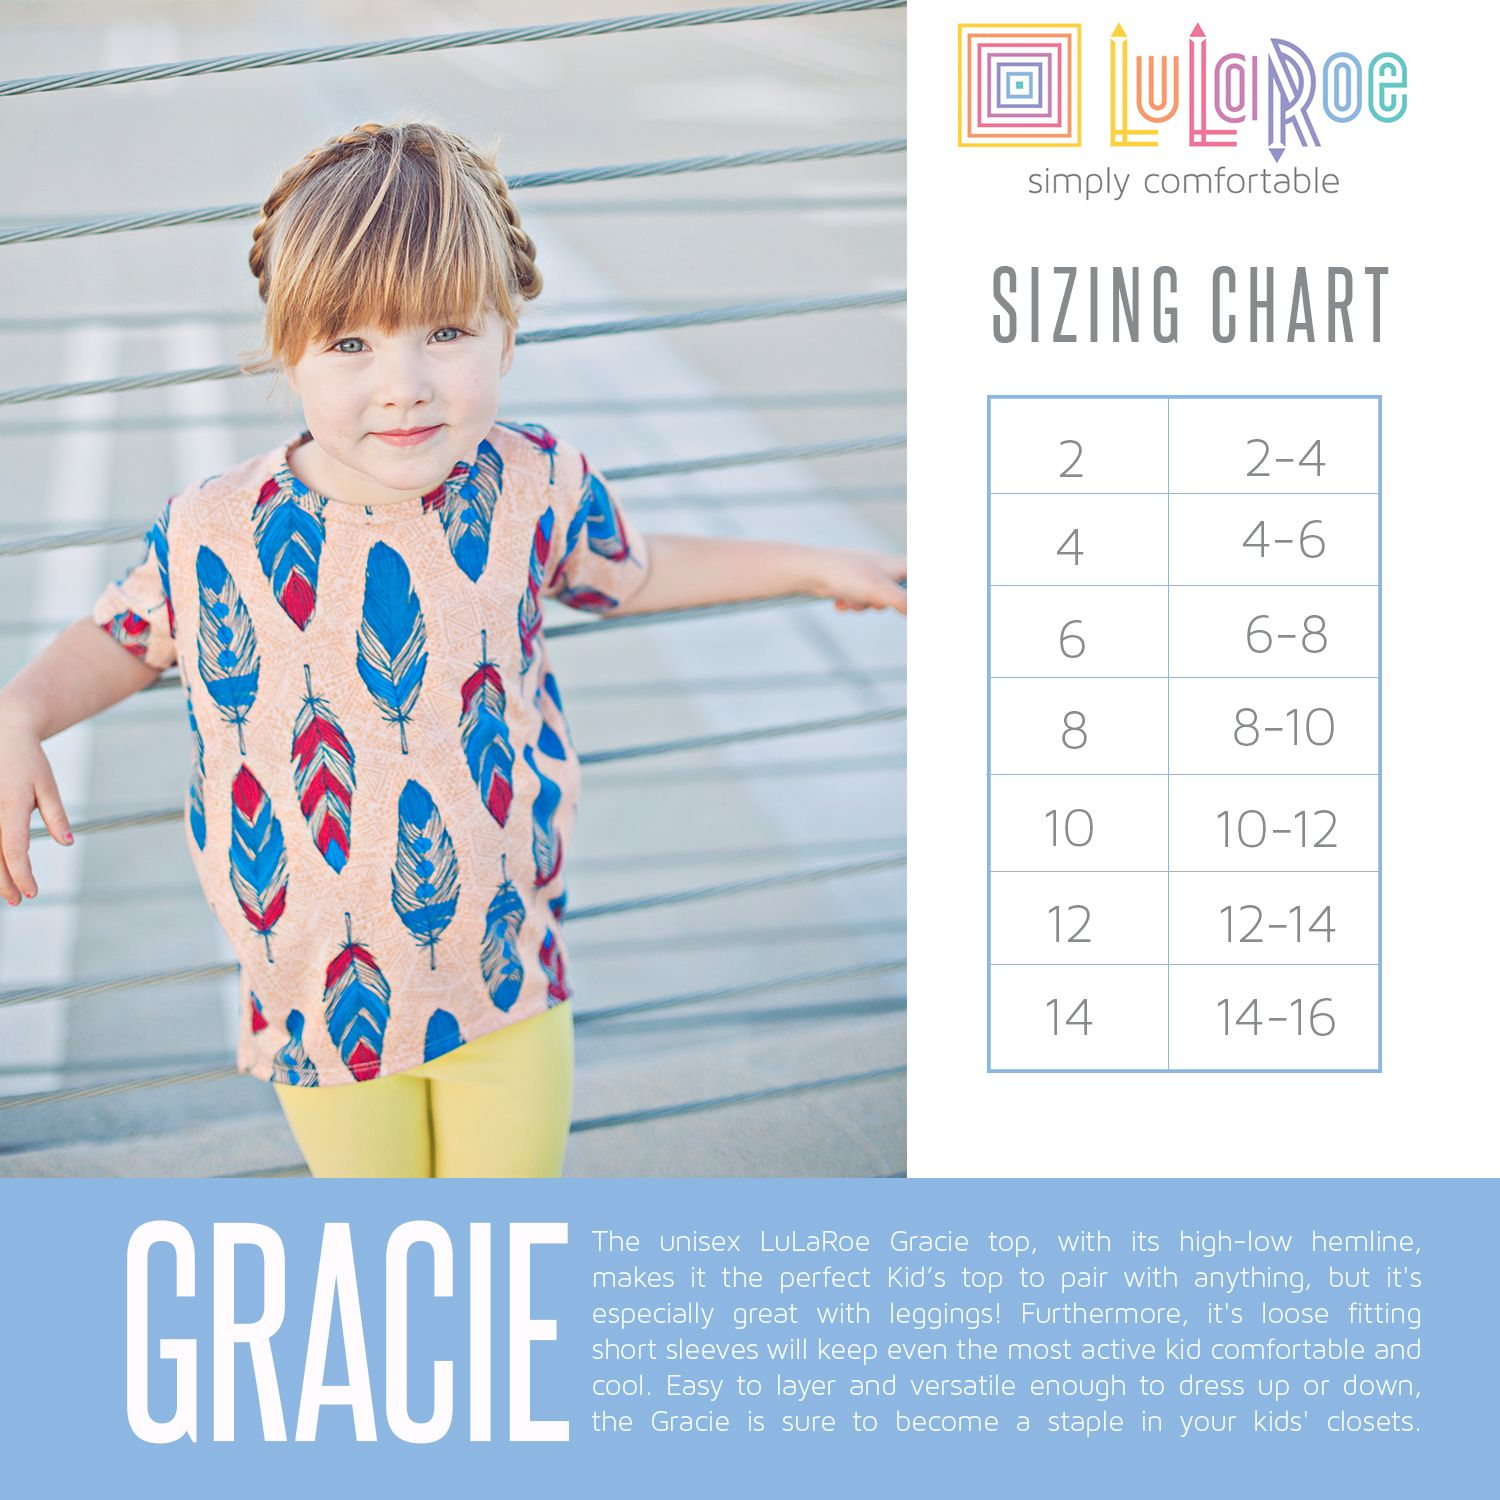 b1de442b5f74a The unisex LuLaRoe Gracie top, with its high-low hemline, makes it the  perfect kids top to pair with anything, but it's especially great with  leggings!